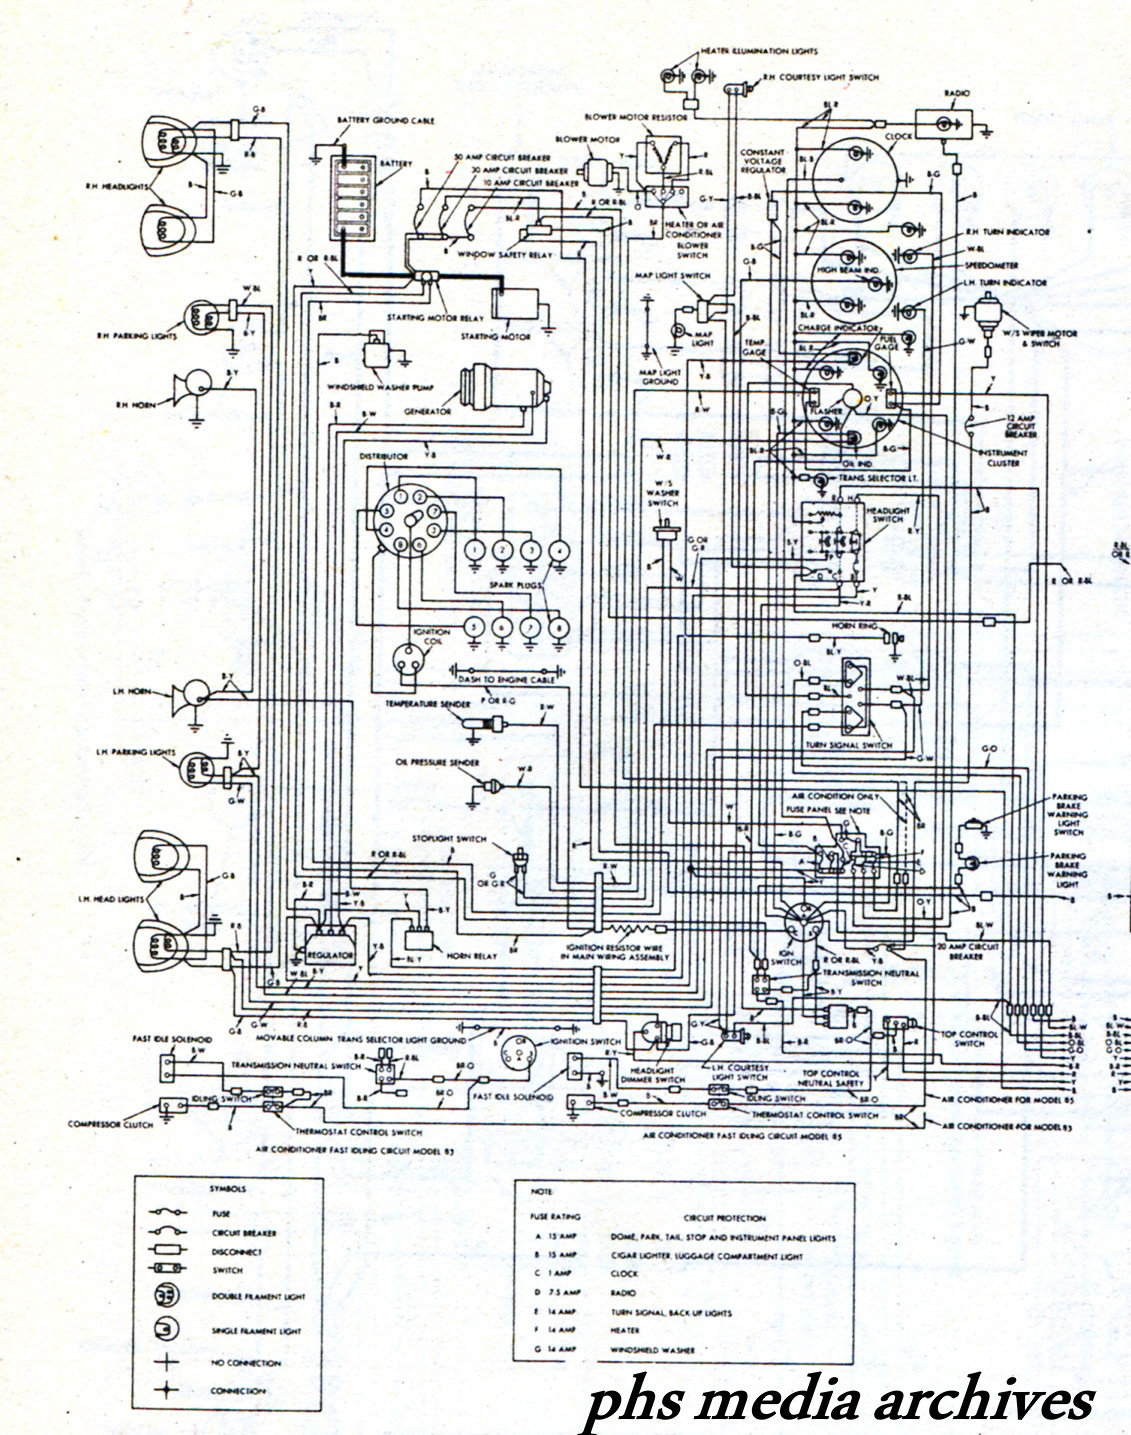 Wiring Diagram For 1963 Ford Thunderbird Convertible Top 63 Fairlane Tech Series 1961 Schematicsthe Front Half Of The T Bird